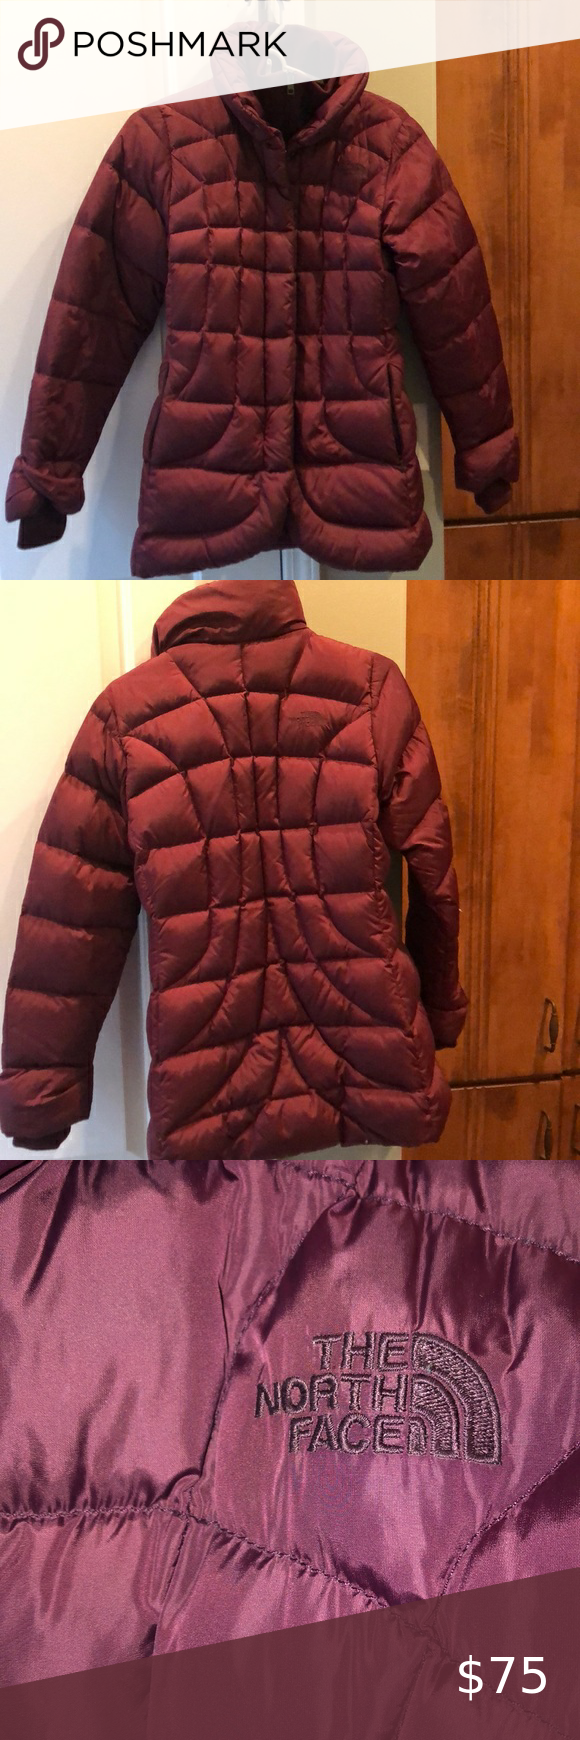 The North Face Puffer Jacket North Face Puffer Jacket North Face Bomber Jacket North Face Winter Coat [ 1740 x 580 Pixel ]